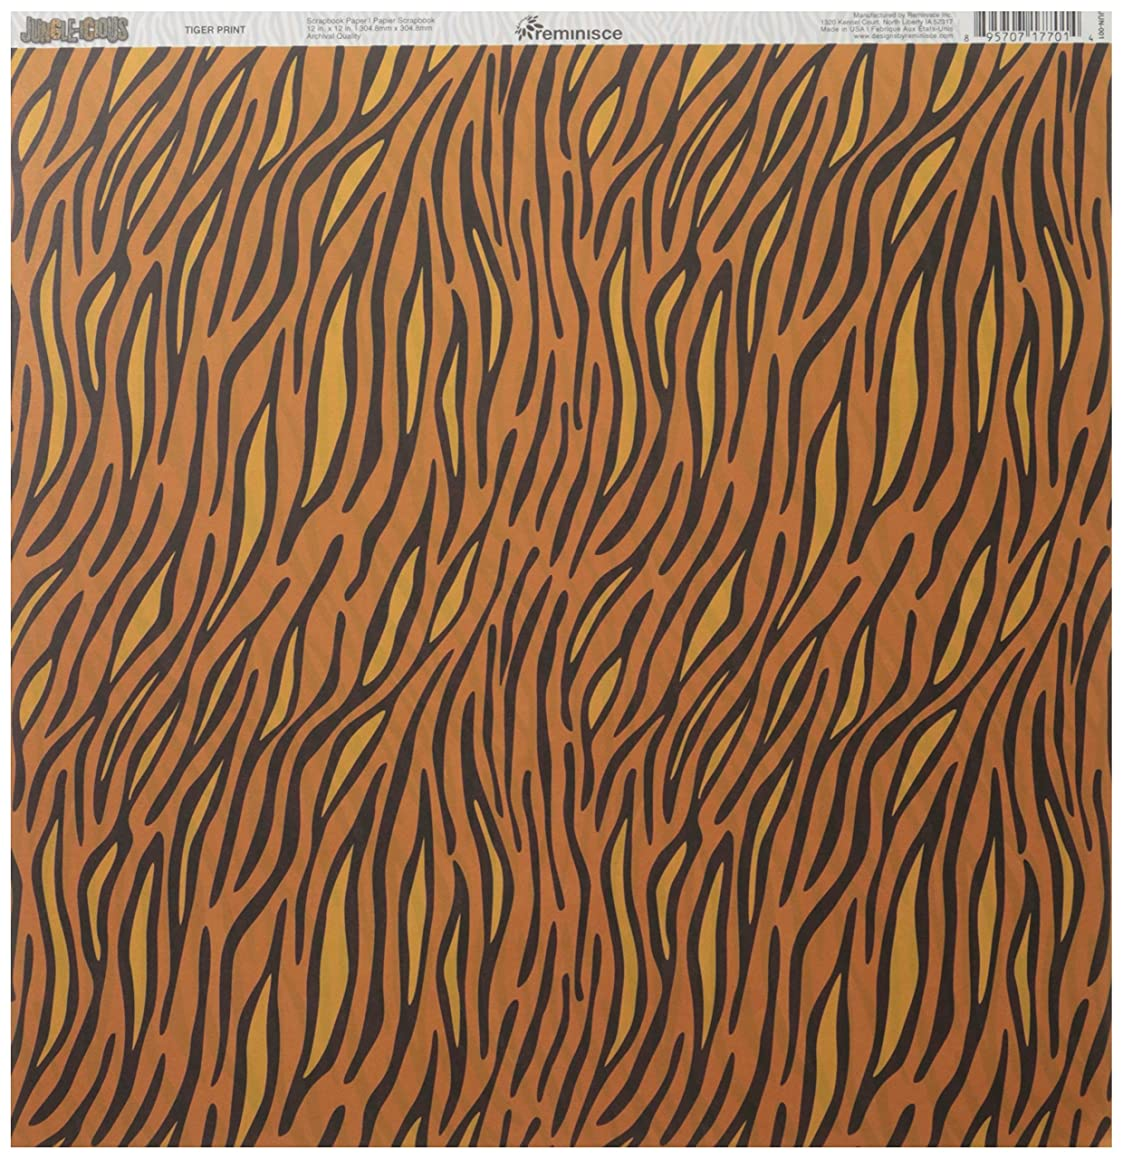 Reminisce Jungle-icious 12 by 12-Inch Double Sided Scrapbook Paper, Tiger Print